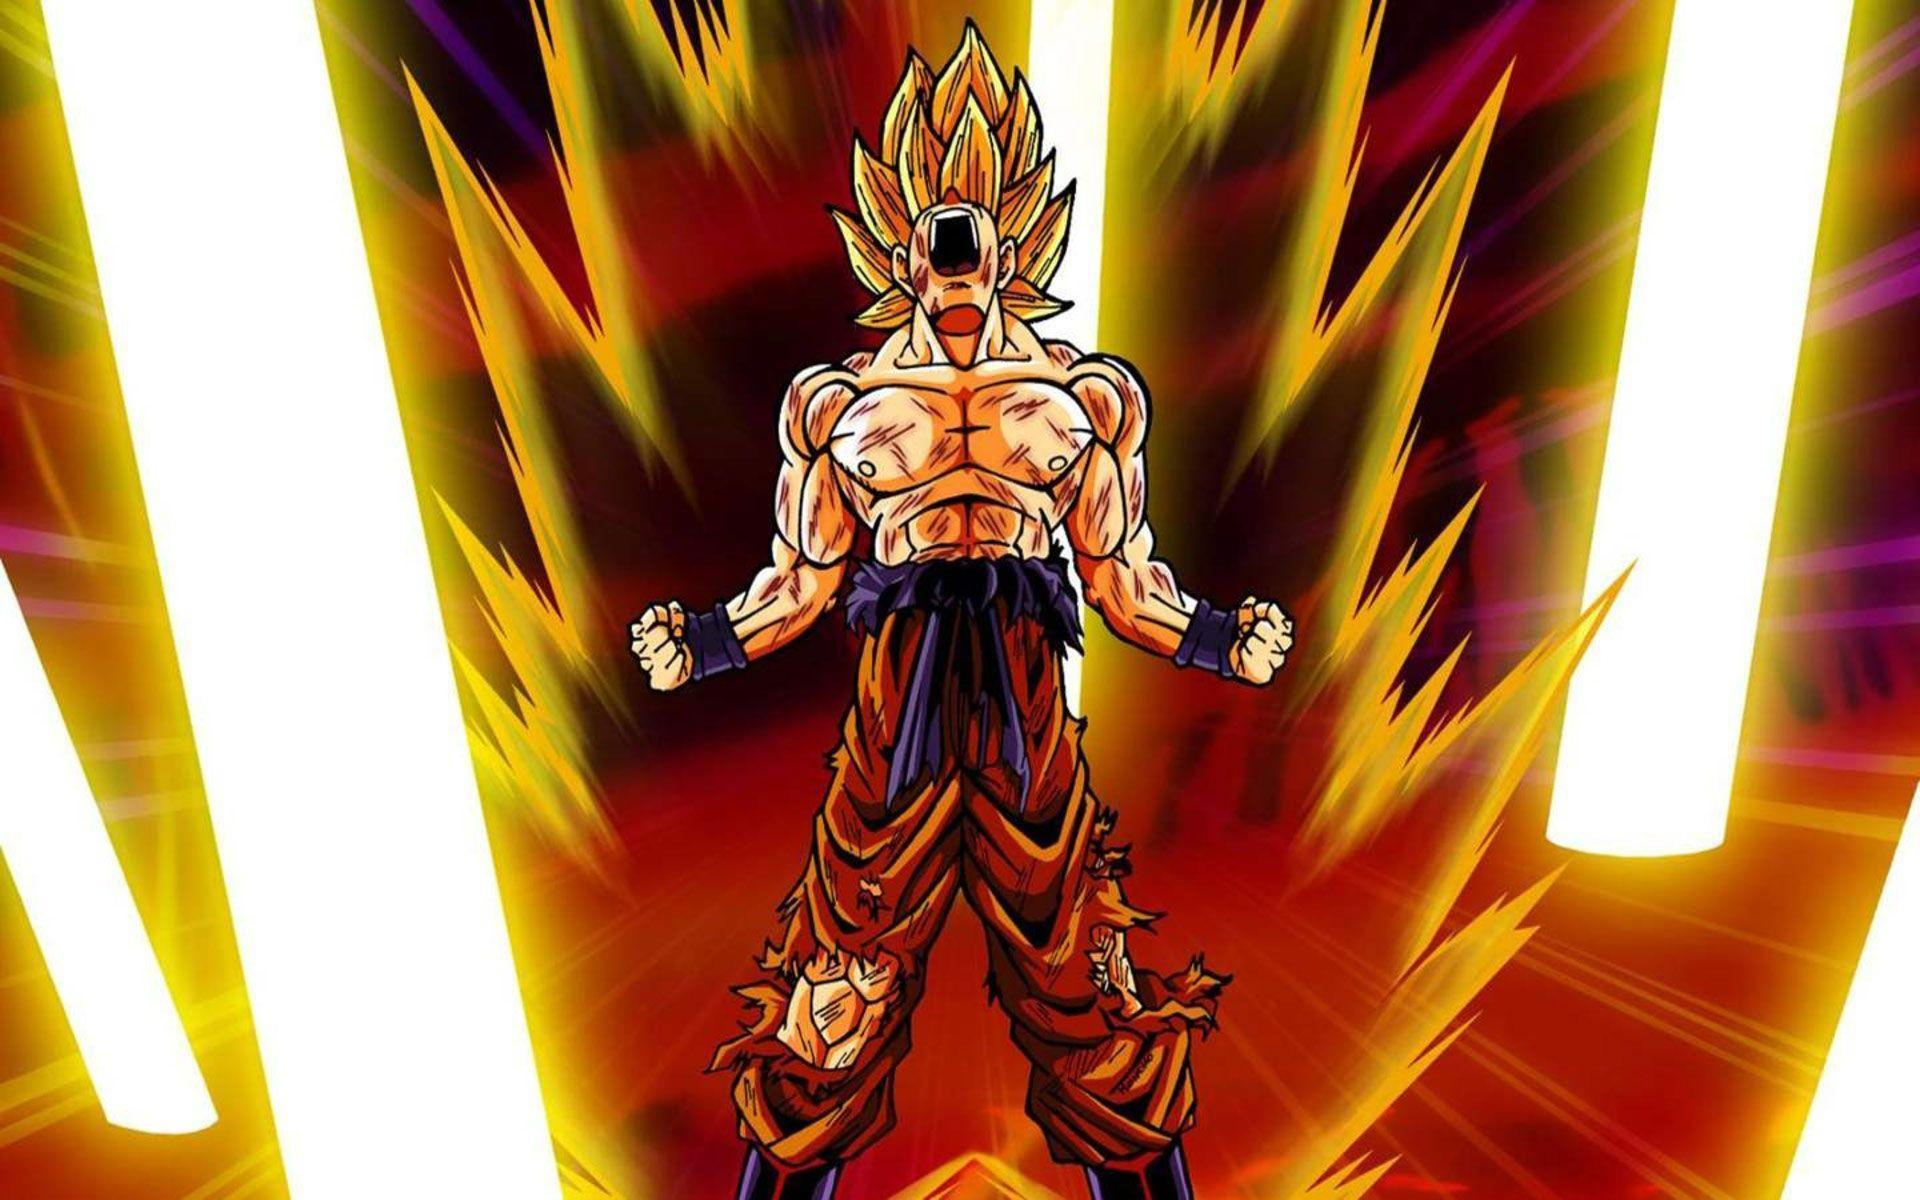 Dragon Ball Z Wallpapers Goku Super Saiyan God Wallpapers High